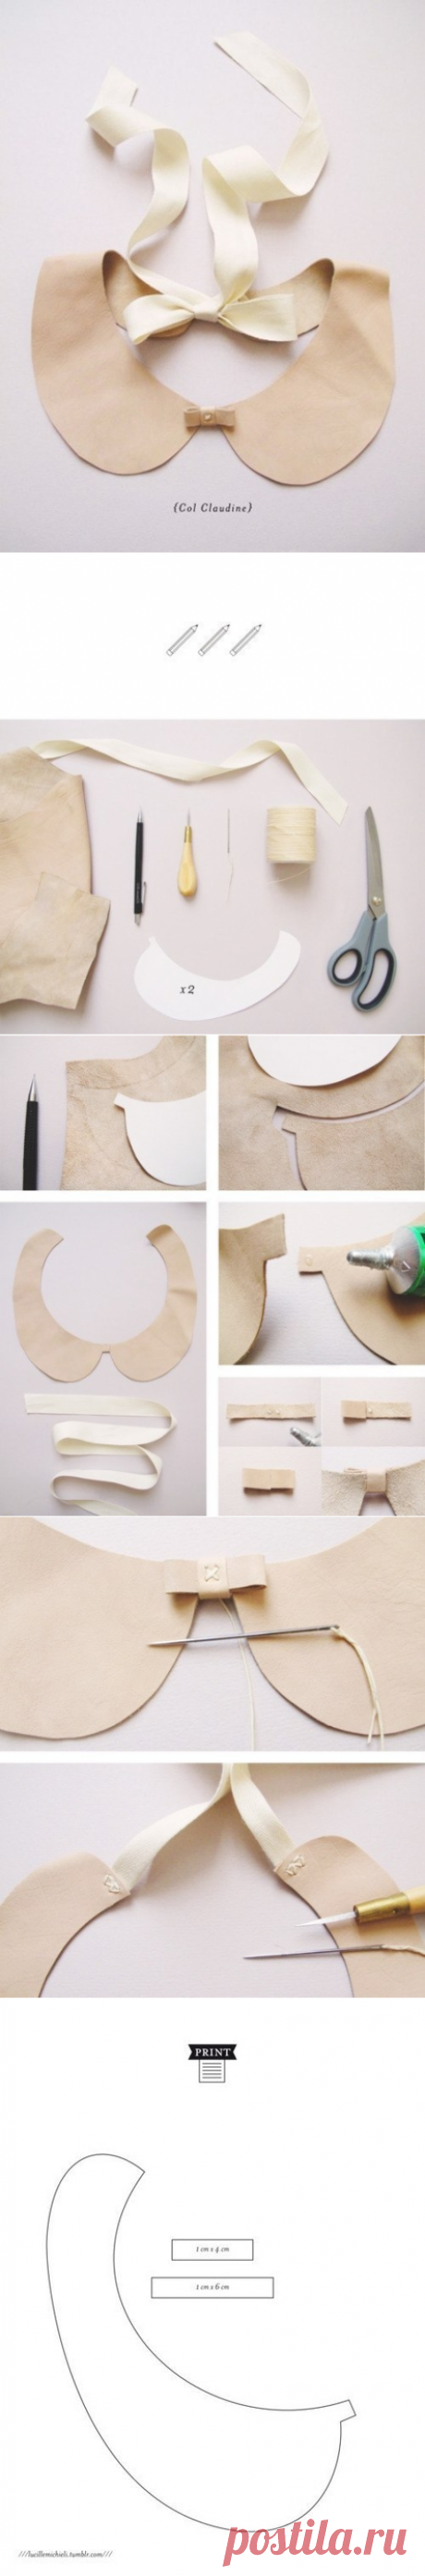 Collar the hands. Template.